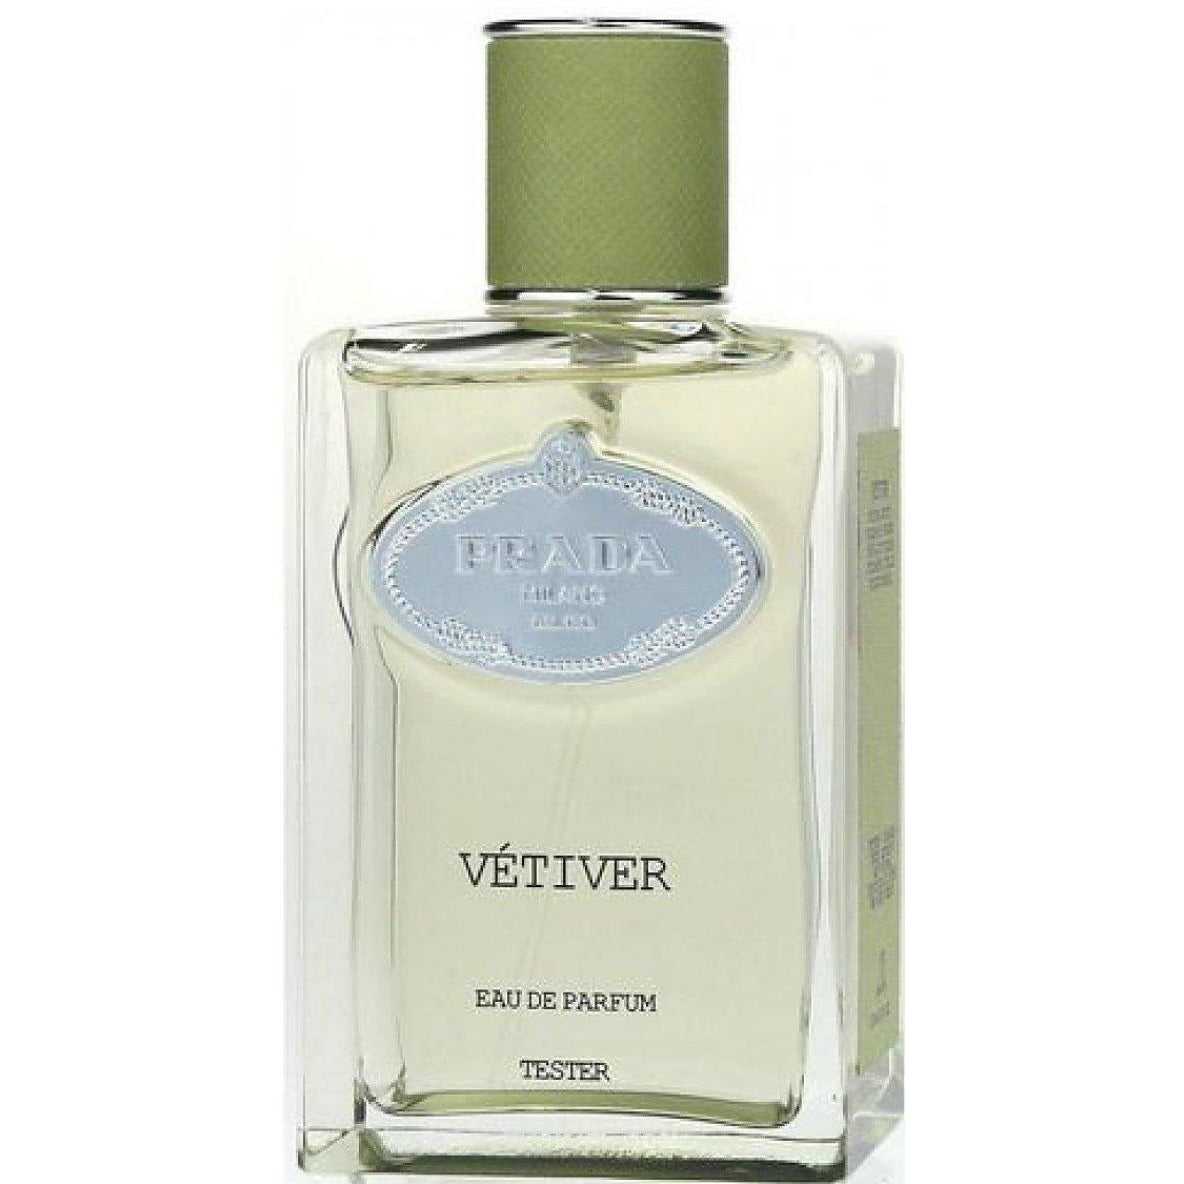 INFUSION VETIVER by Prada perfume for her EDP 3.3 / 3.4 oz New Tester